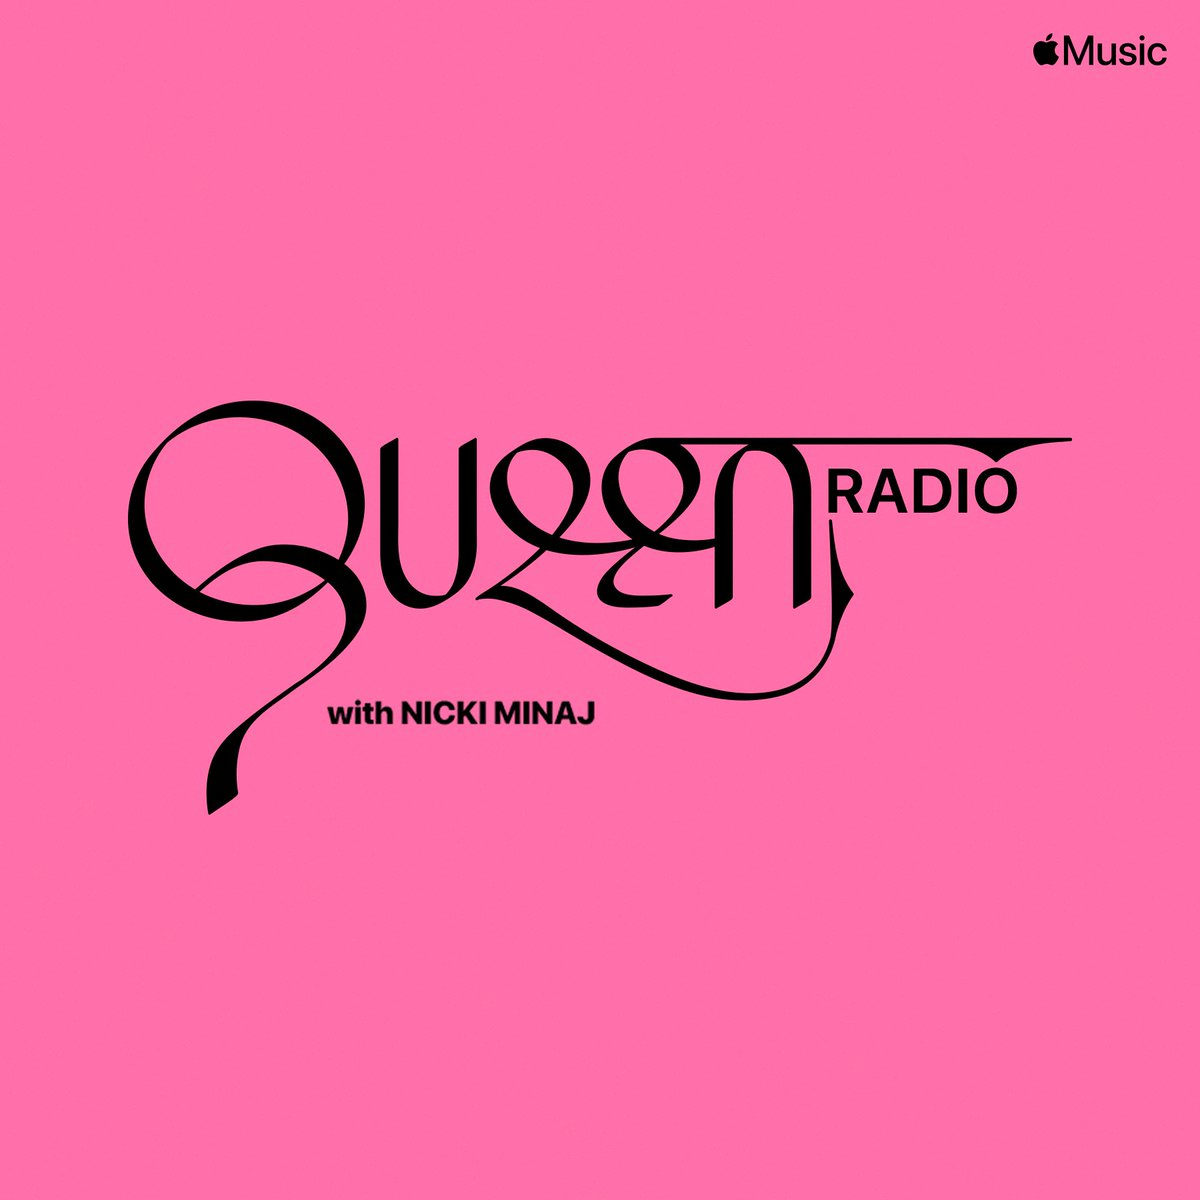 #QueenRadio first episode of the decade tmrw @ 3pm EST‼️‼️‼️‼️. Keep #YikesOutNow in your tweets to win stuff 😛